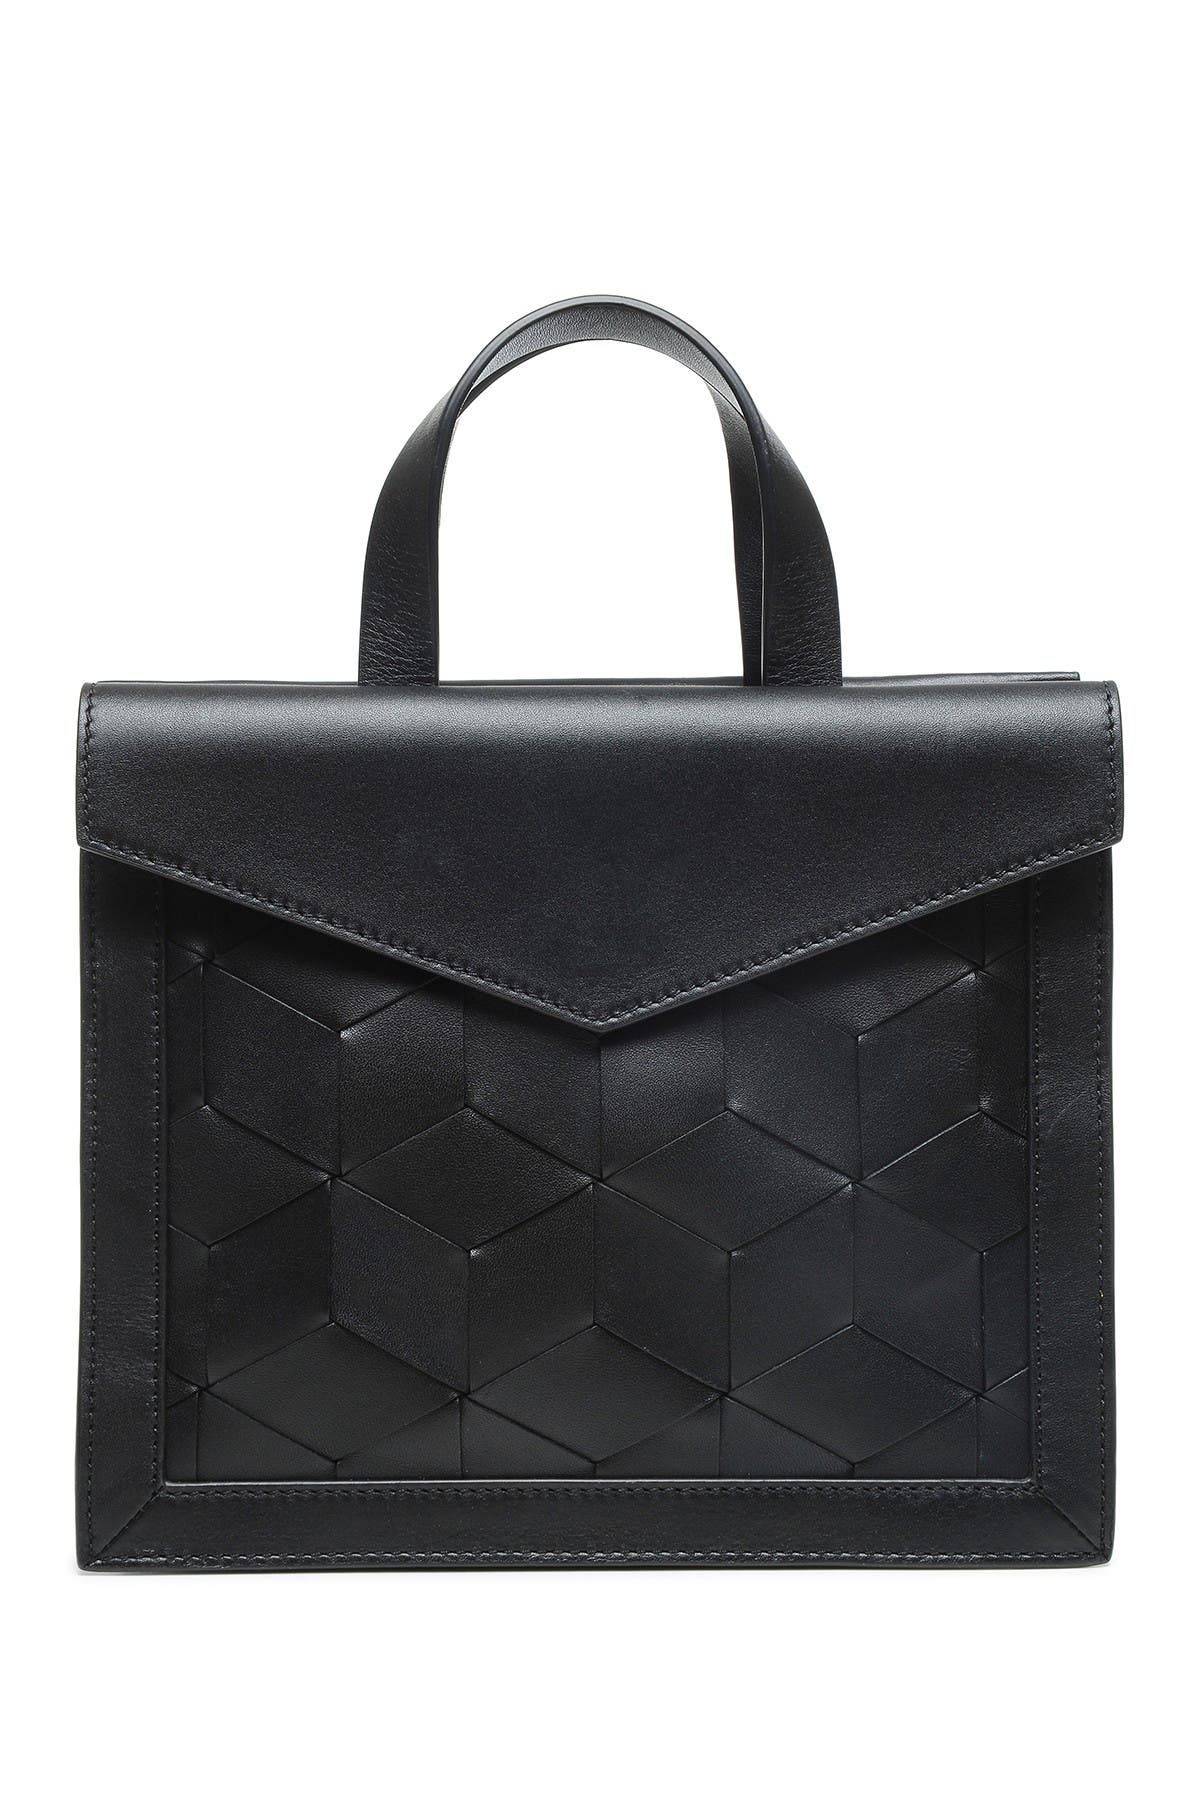 Image of Welden Bags Leather Voyager Small Flap Satchel